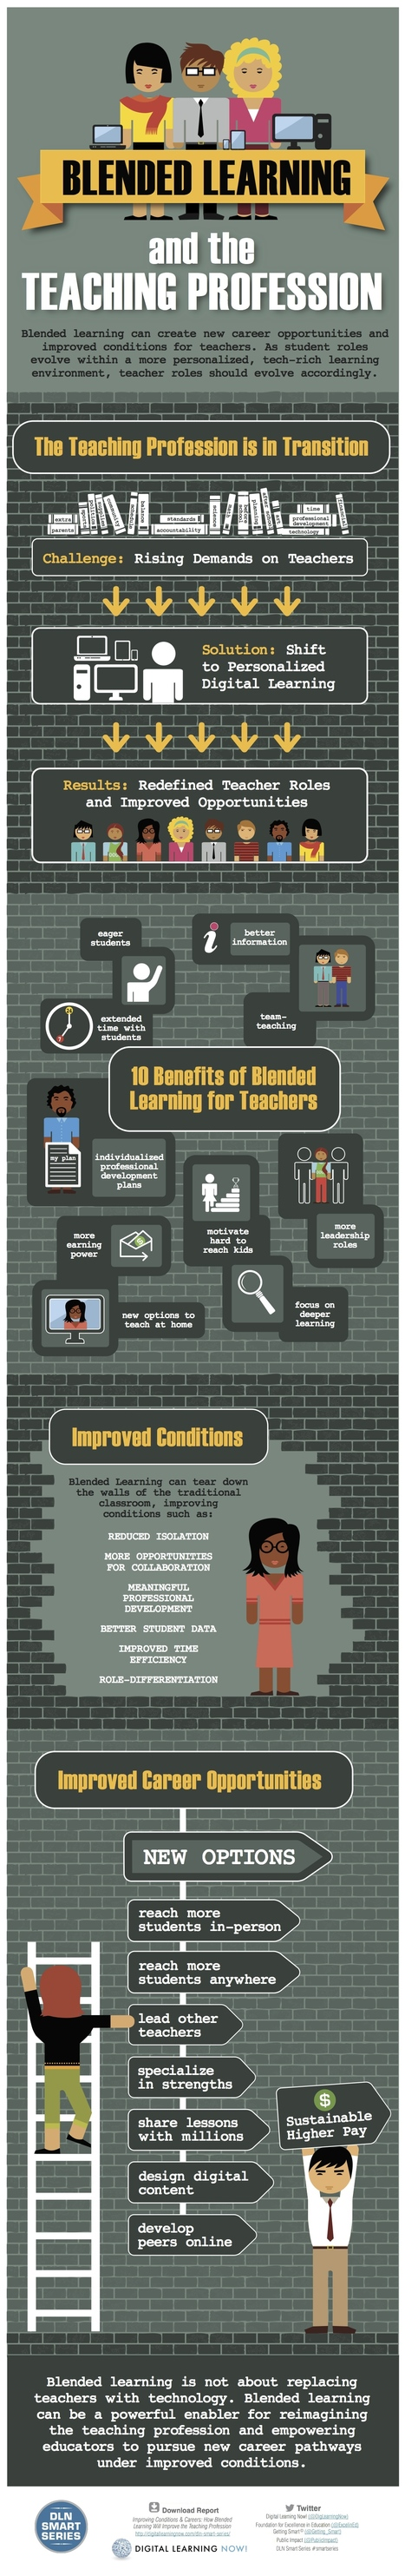 Blended Learning & The Teaching Profession [Infographic] | Sizzlin' News | Scoop.it